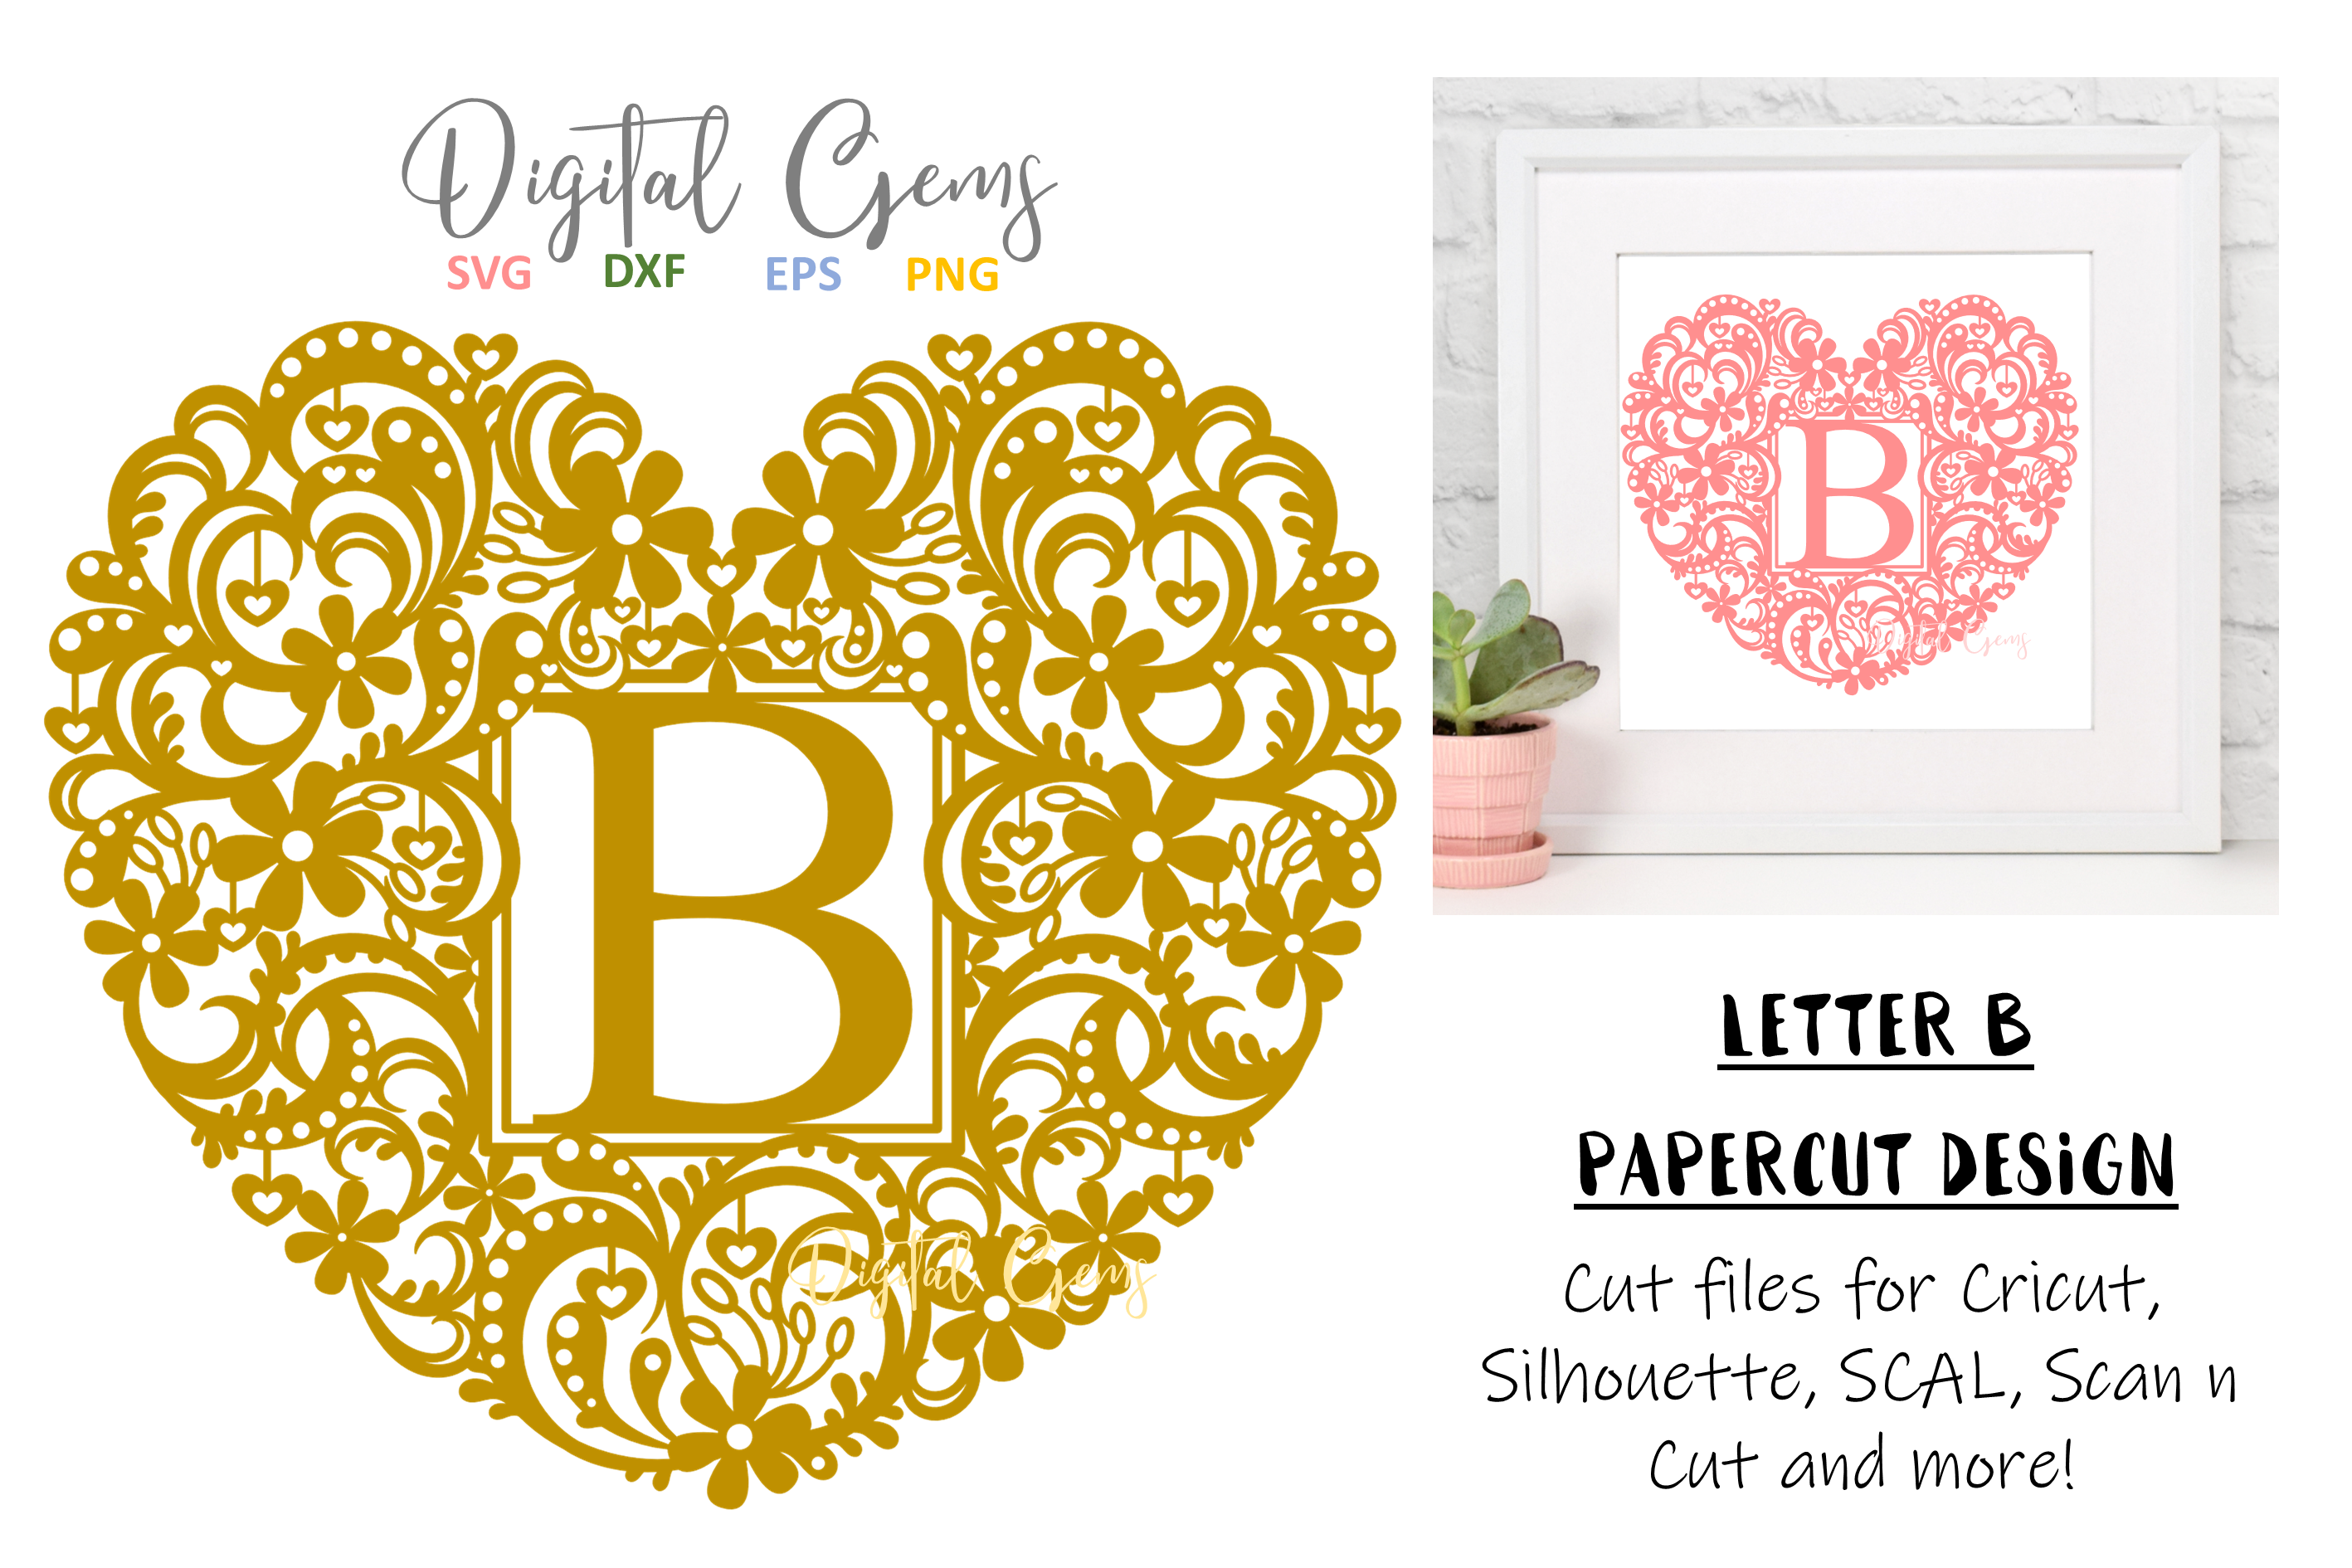 Letter B paper cut design. SVG / DXF / EPS / PNG files example image 1